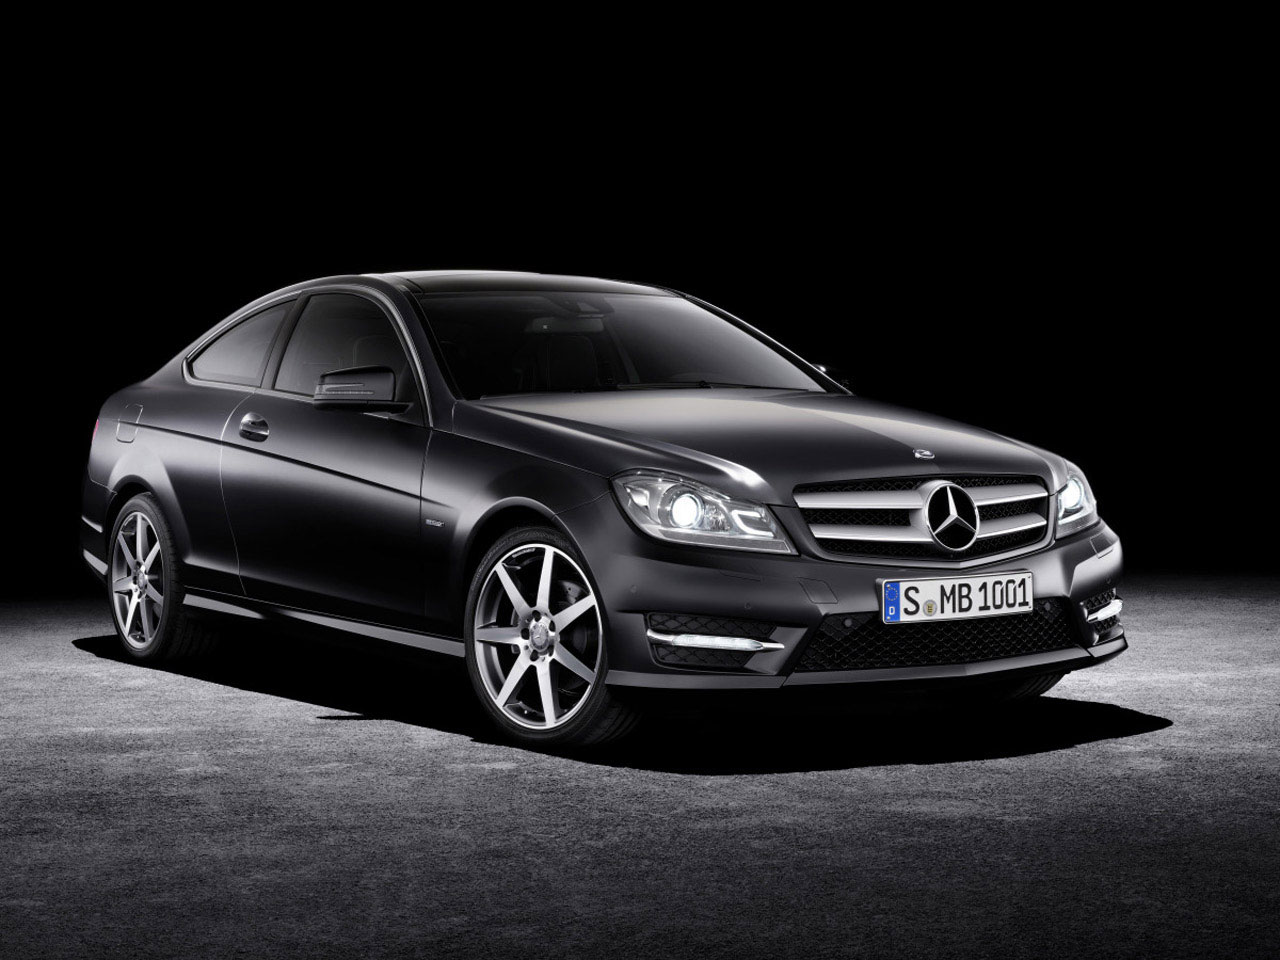 2012 mercedes benz c class coupe officially revealed. Black Bedroom Furniture Sets. Home Design Ideas